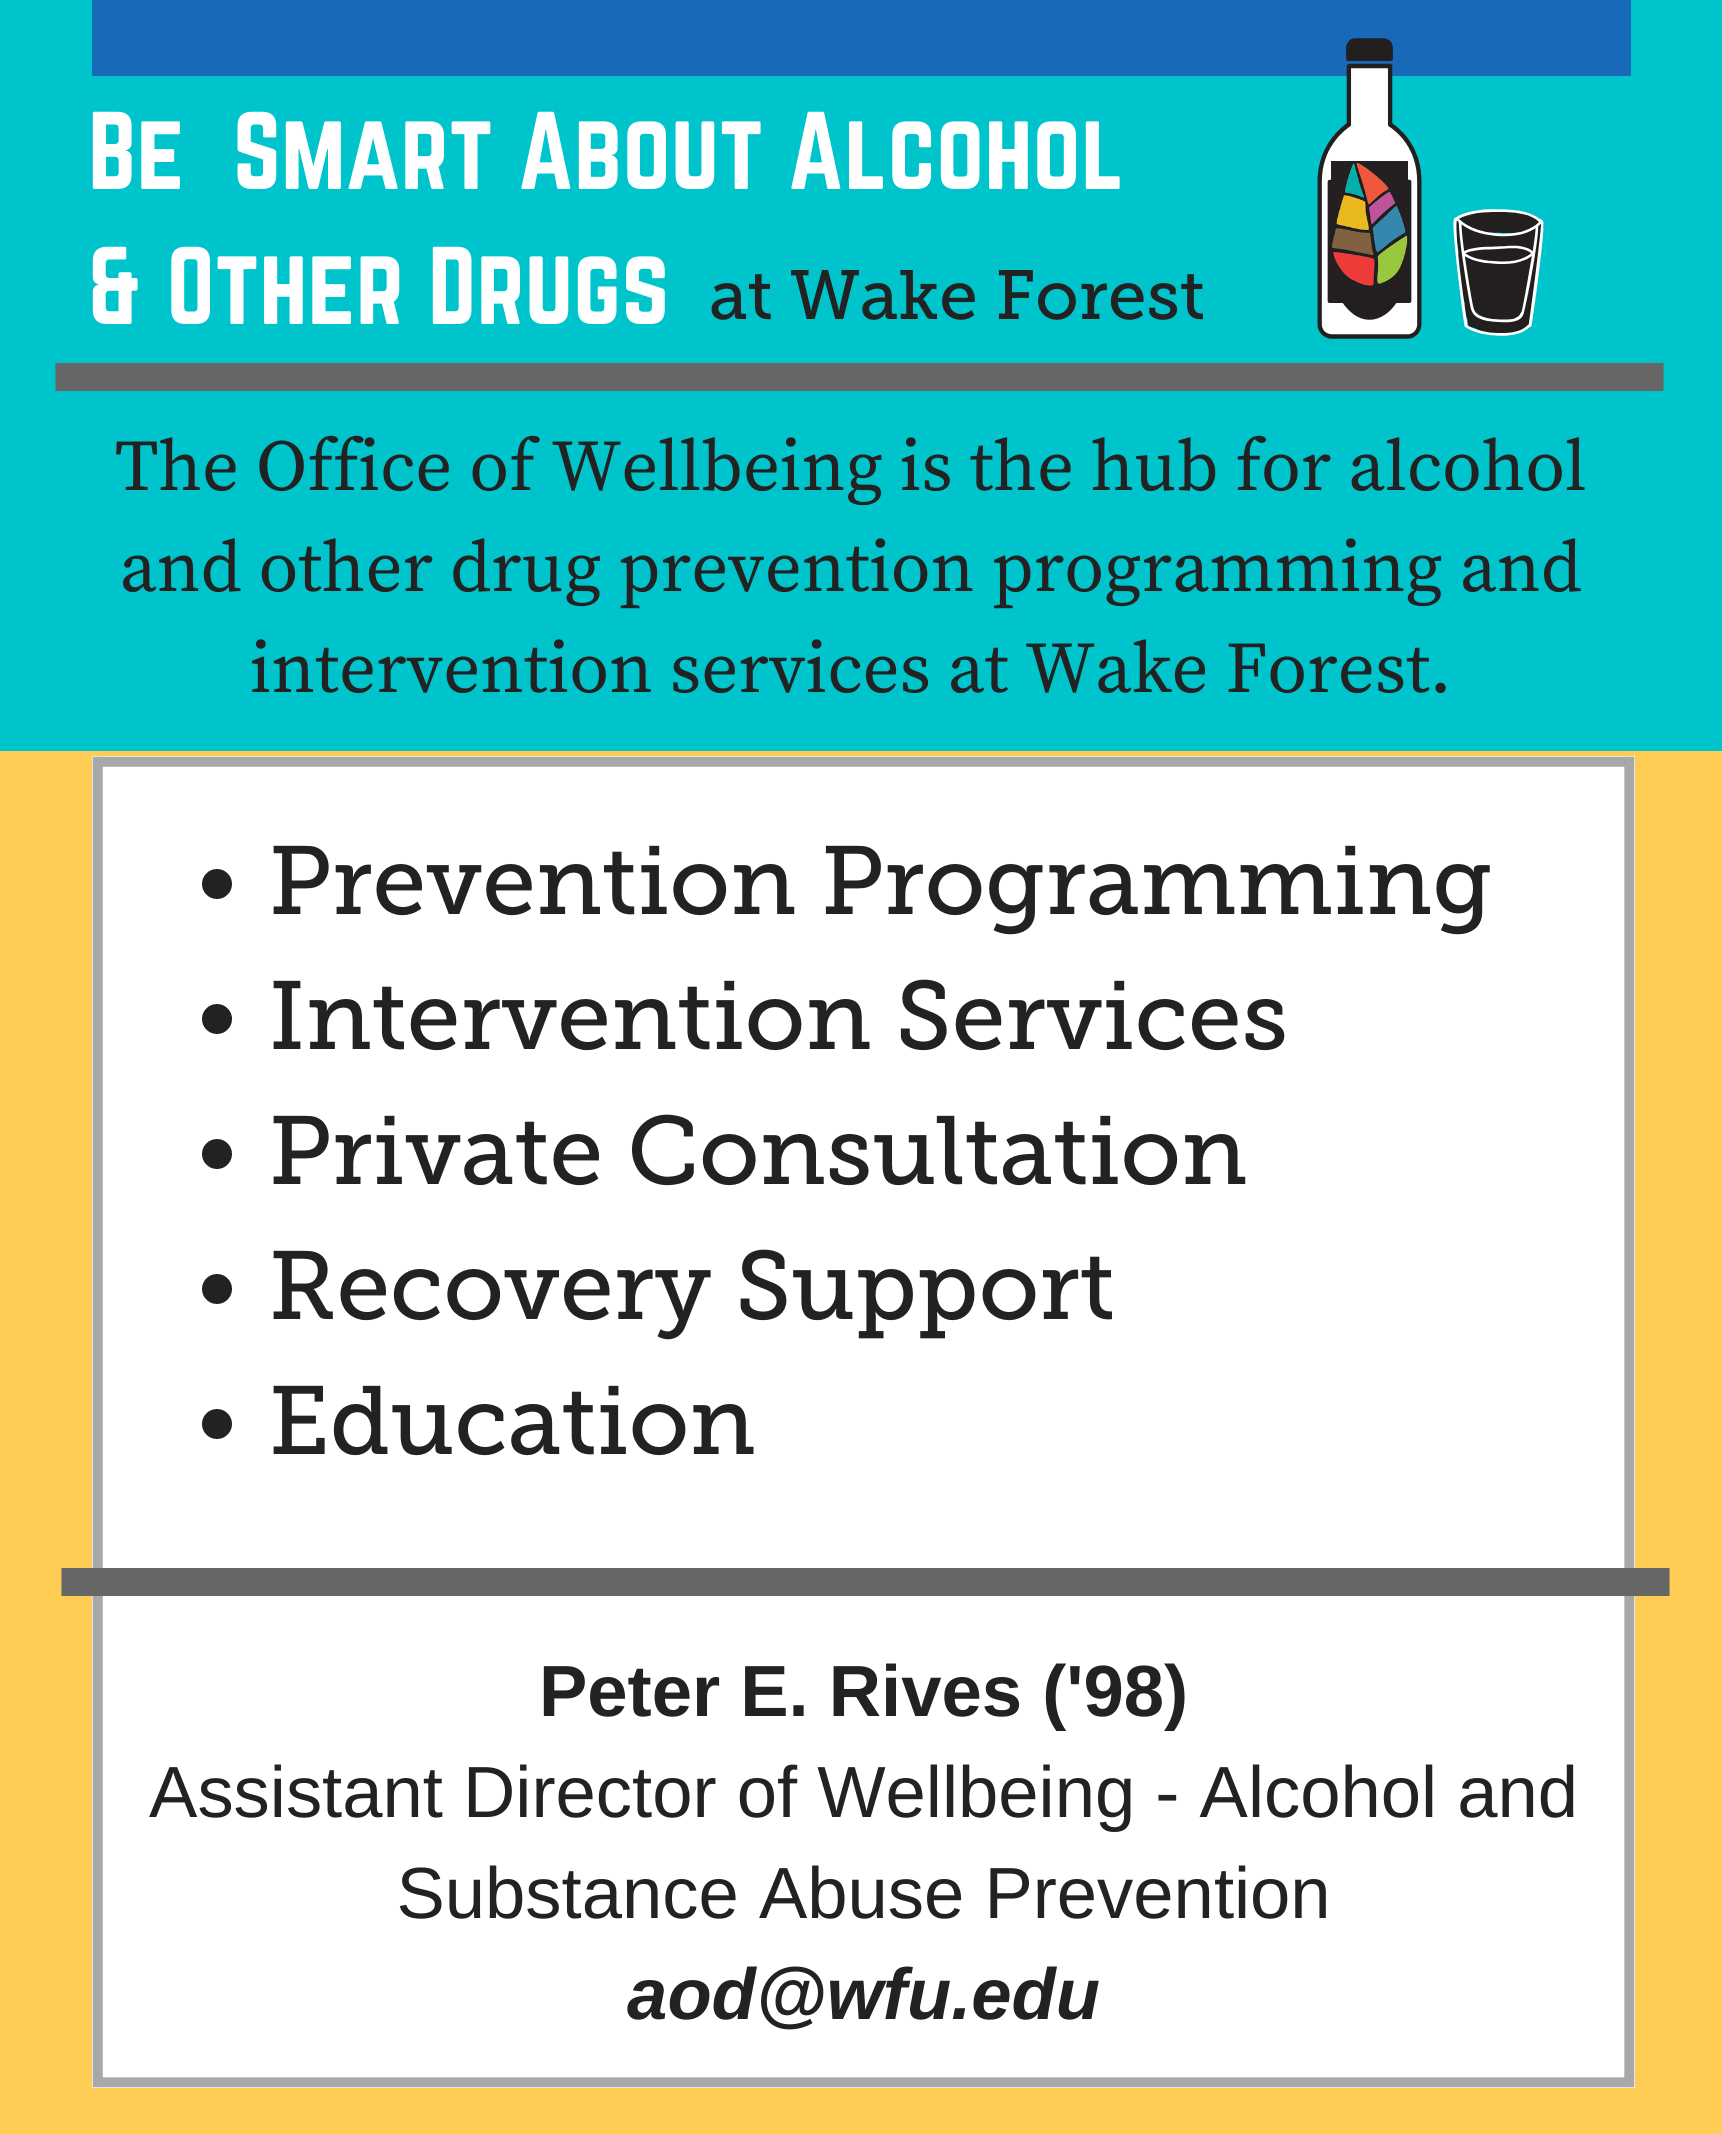 Office of Wellbeing is the hub for alcohol and other drug services and programs at WFU